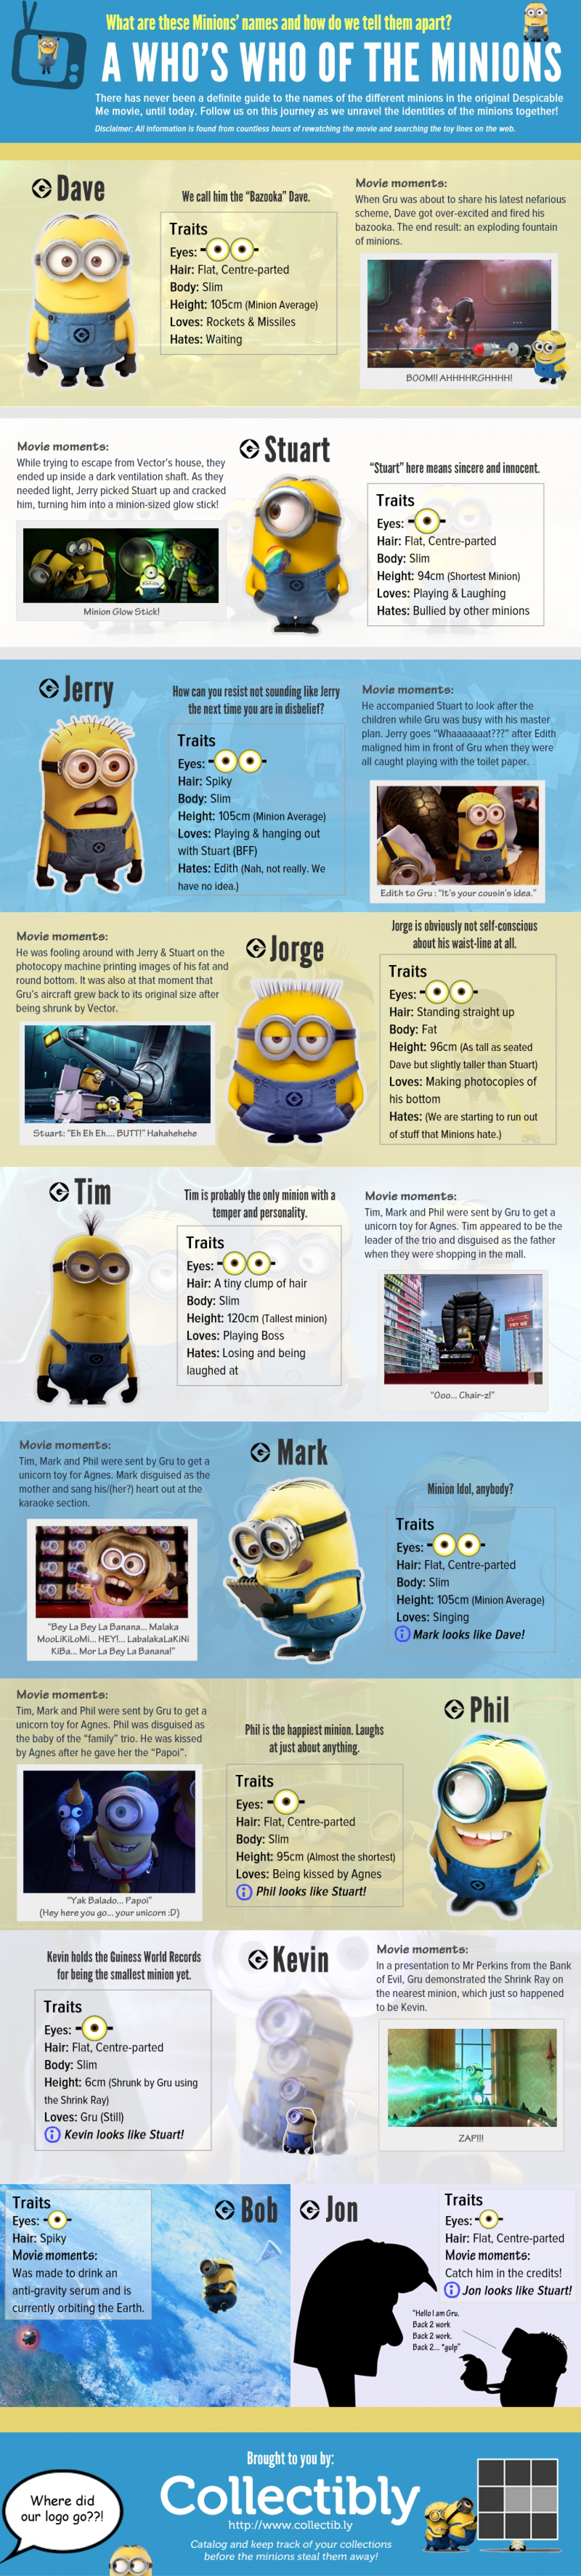 minions infographic